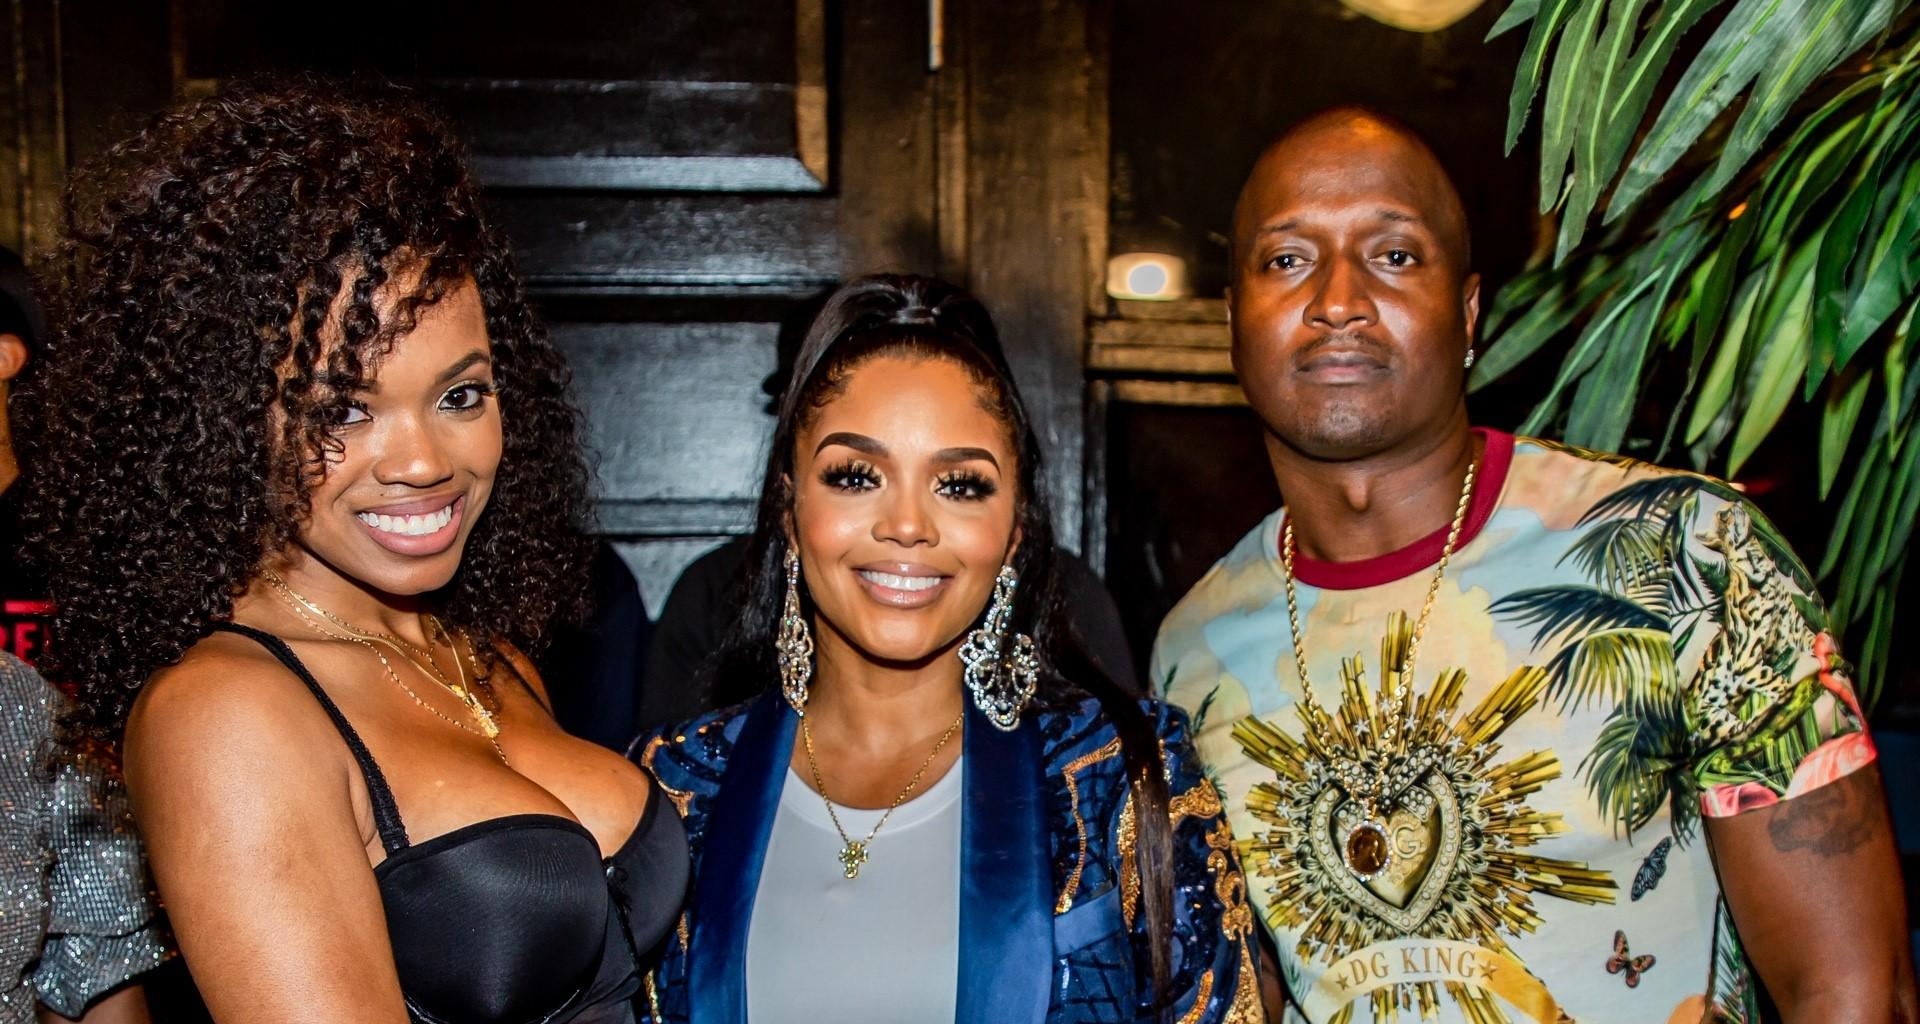 Rasheeda Frost And Kirk Frost Are Wishing Their Son A Happy Birthday - See Their Messages For Him!